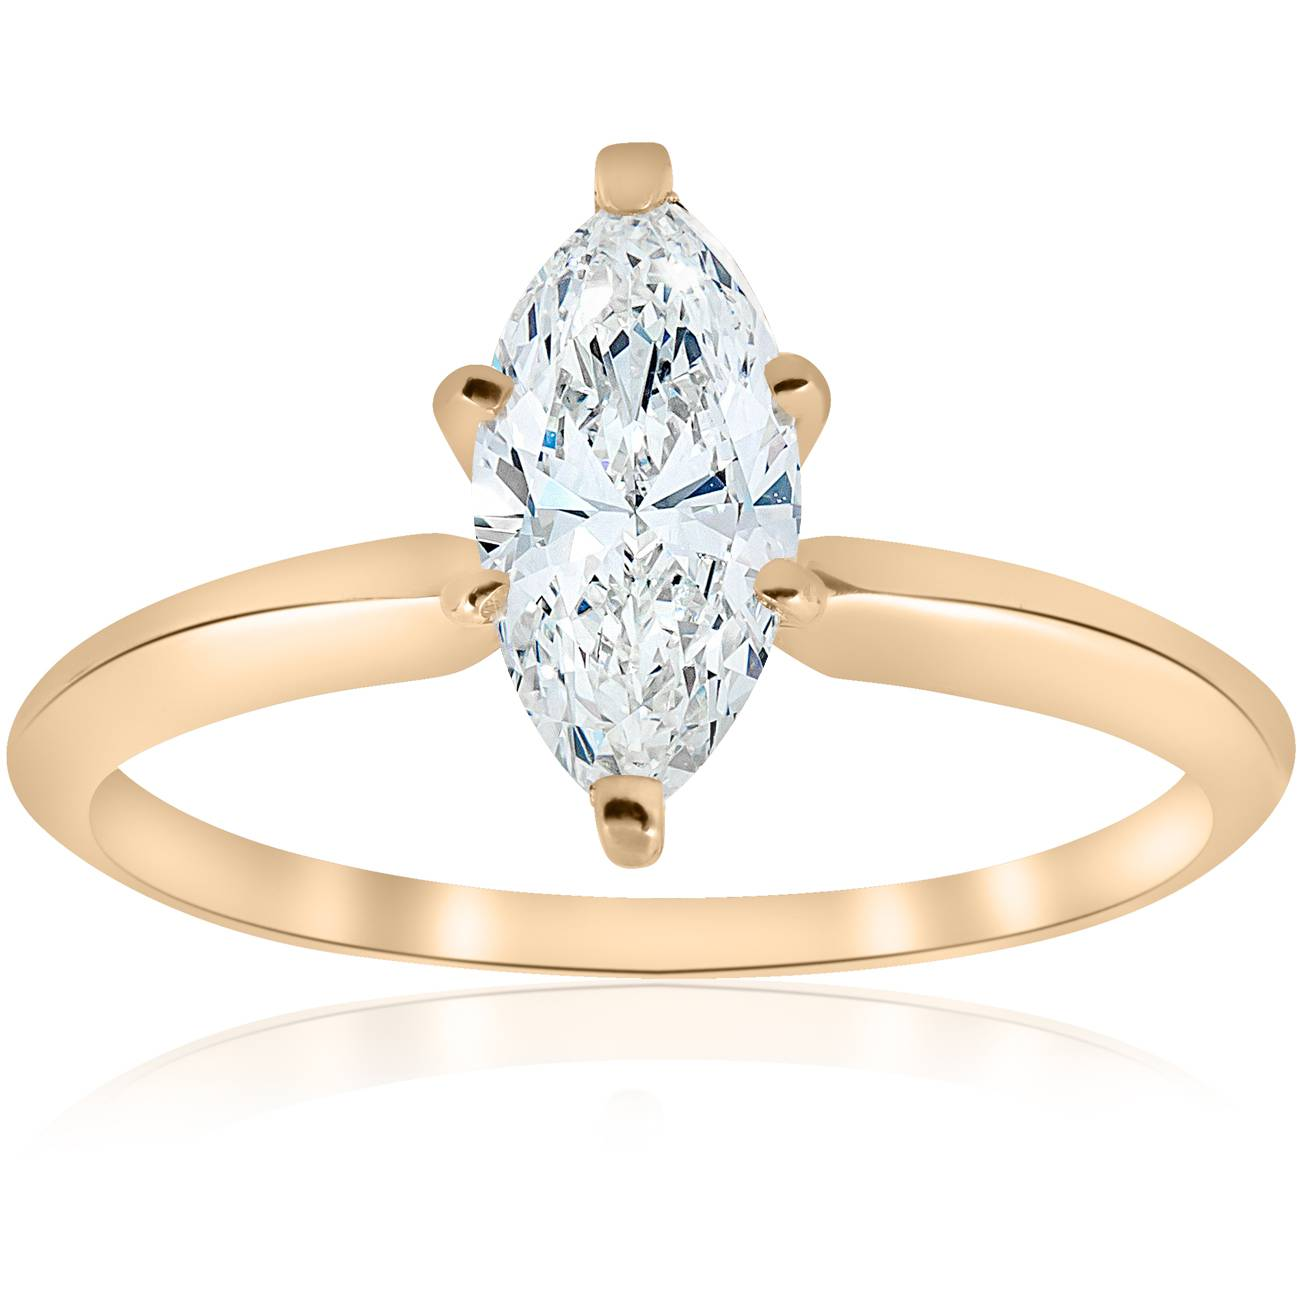 14 kt Yellow Gold 1 ct Marquise Enhanced Diamond Engagement Solitaire Ring by Pompeii3